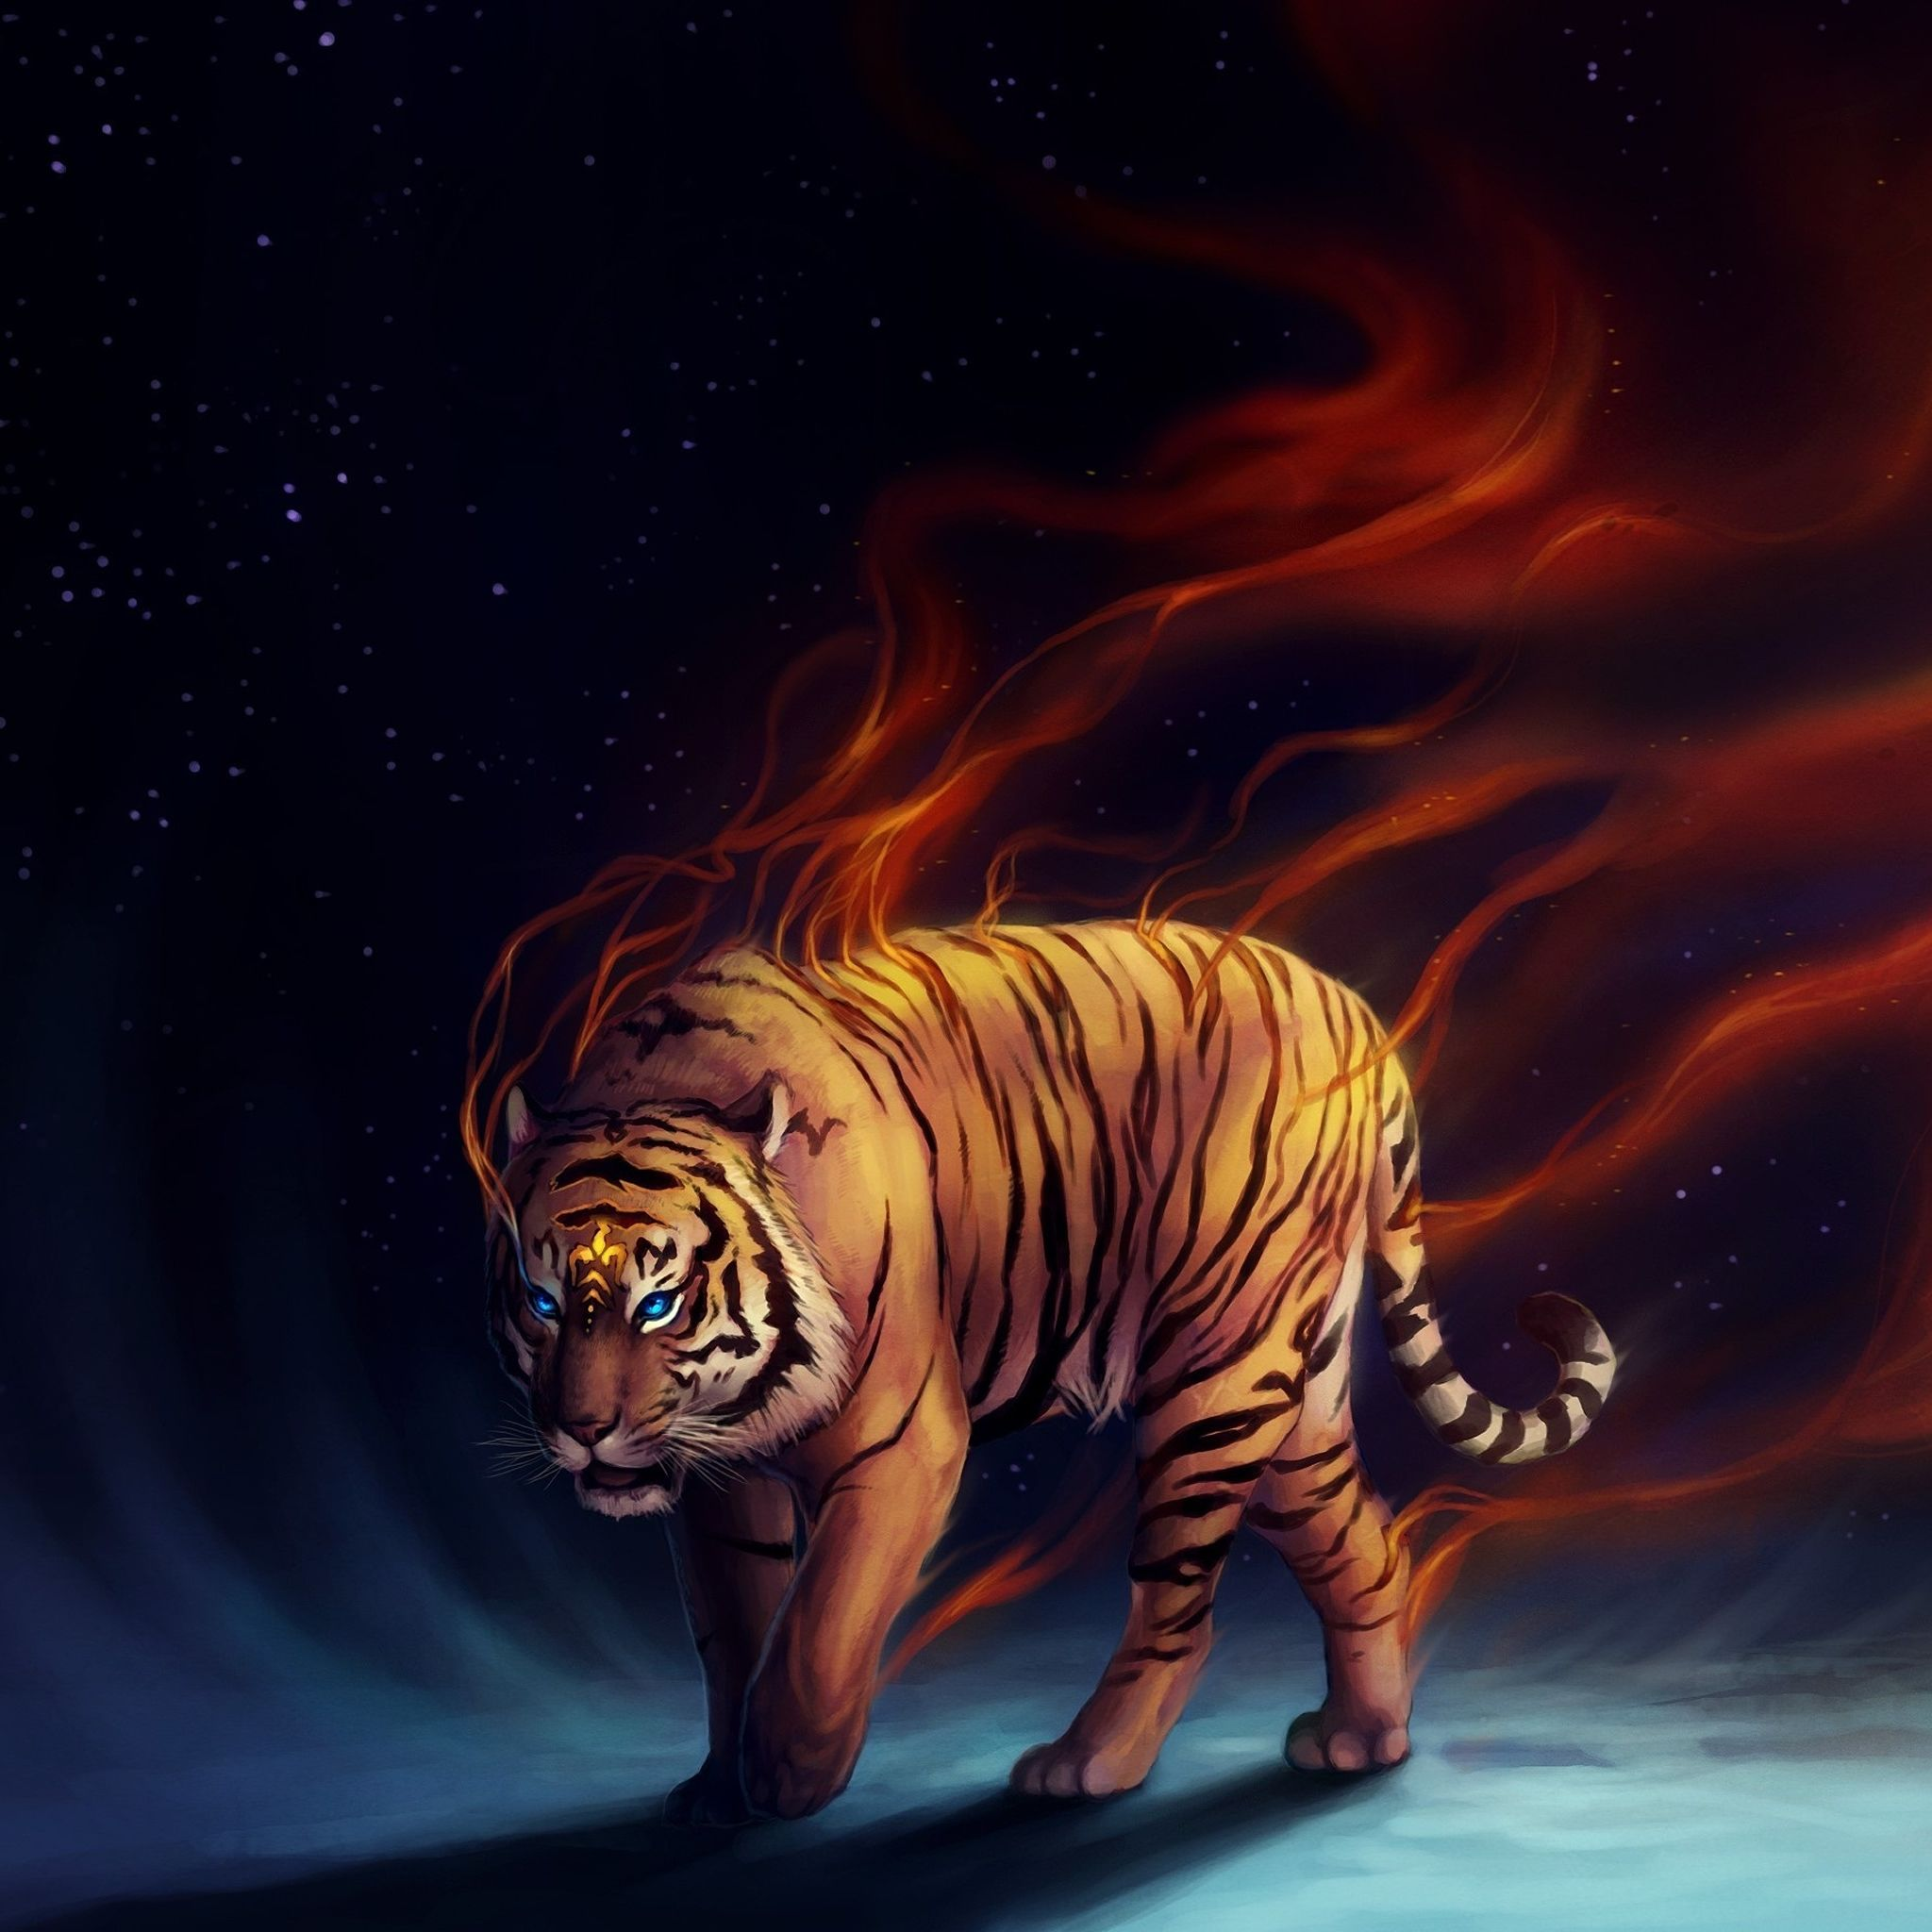 Really Cool Tiger Art